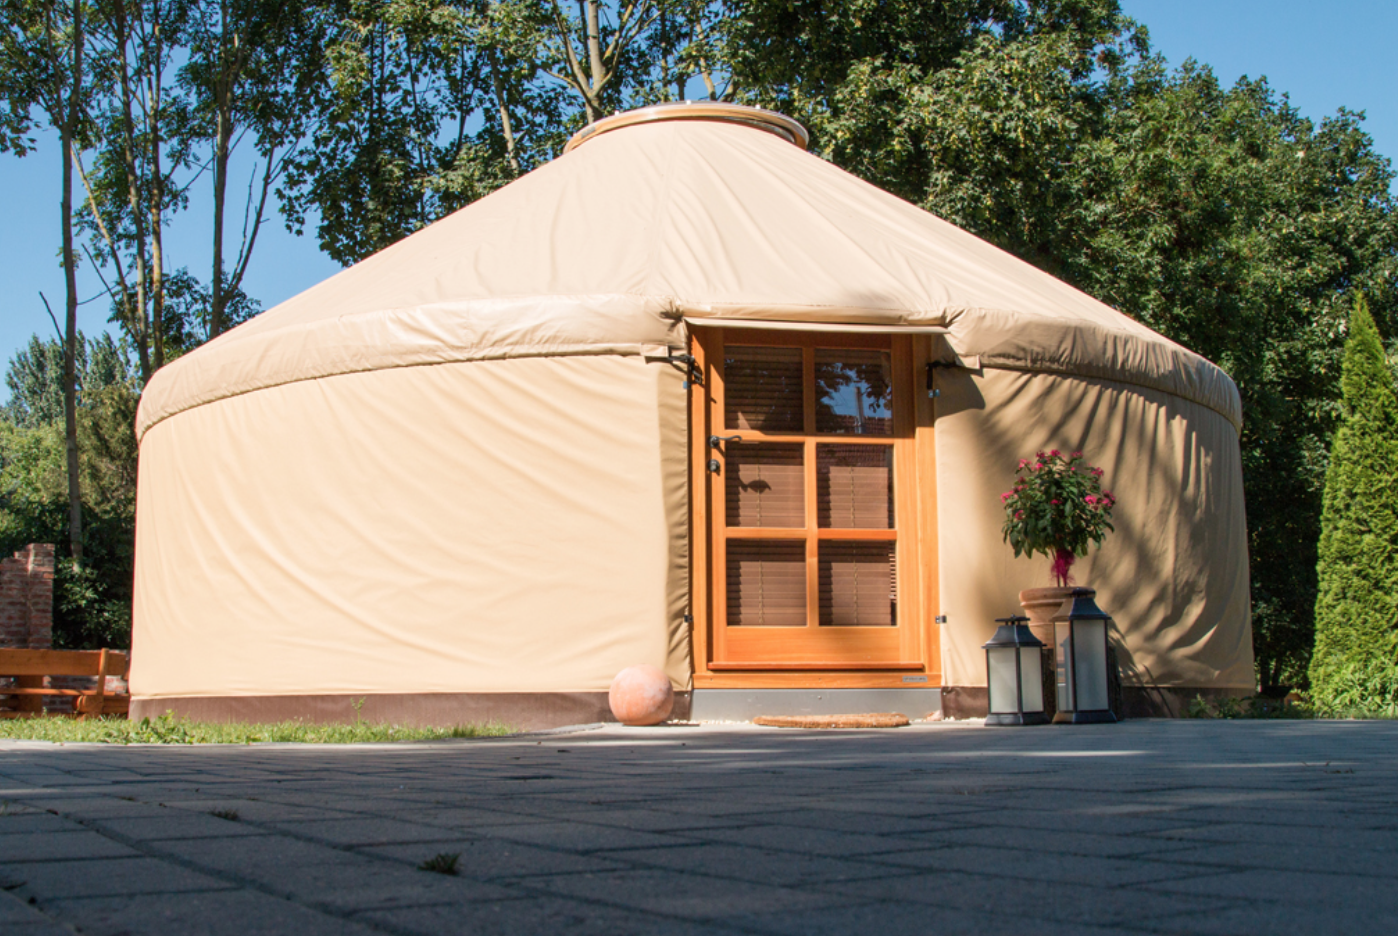 Yurt to stay - Germany, Herbsleben